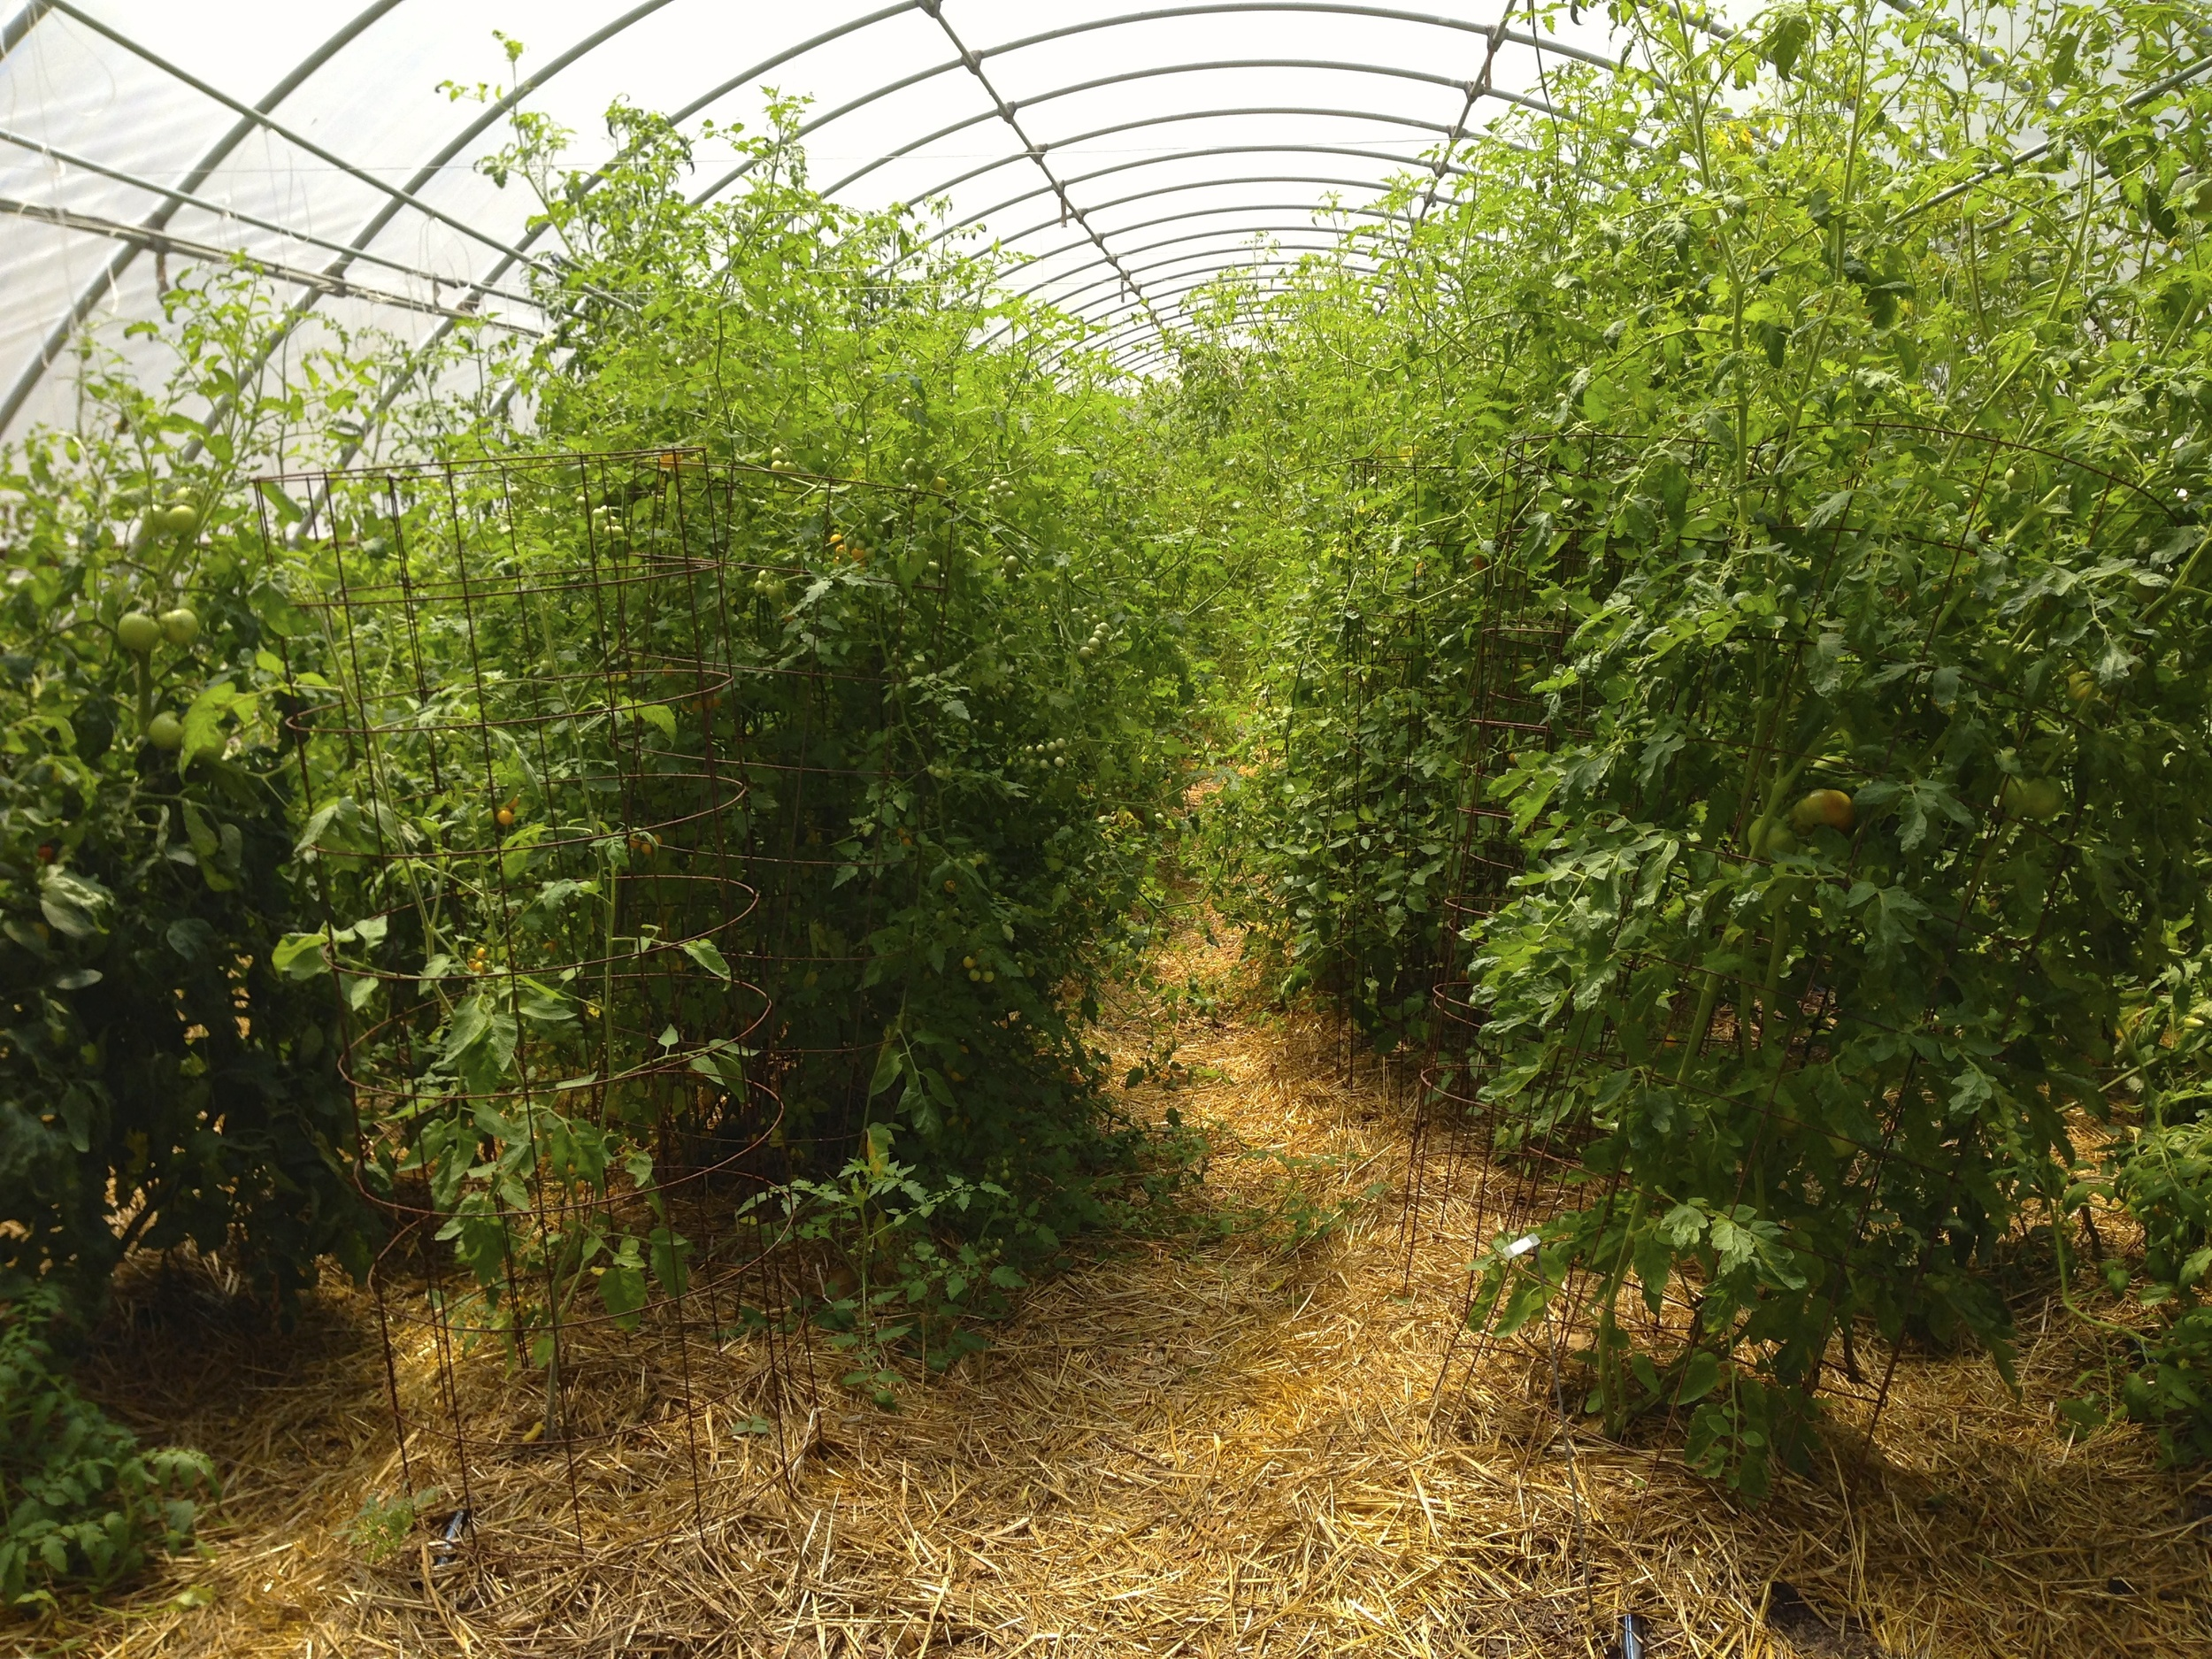 You can't capture with a camera how full this 30' x 96' hoophouse is of various tomato varieties. They were the first planted in this relatively warm environment when it was still cool outside. Walk between the rows now and you are covered with yellow from all the tomato pollen.